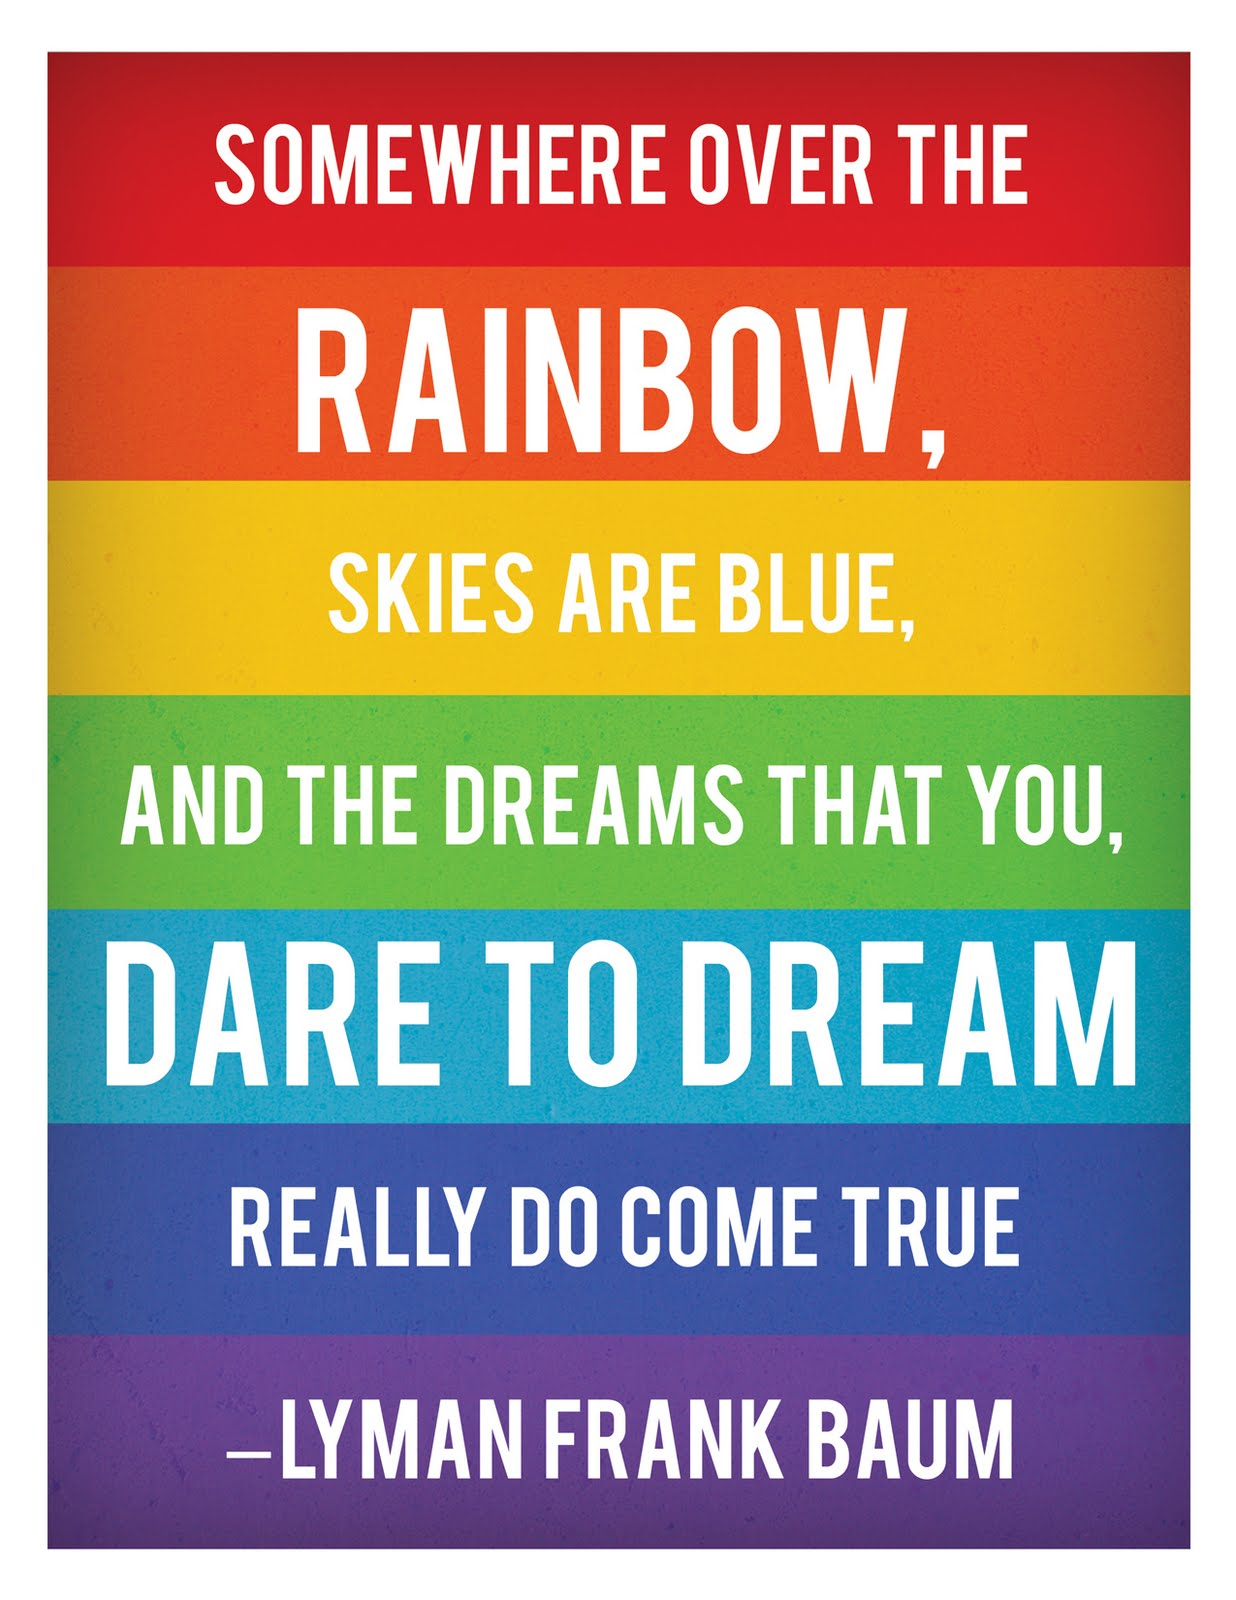 Somewhere over the rainbow, skies are blue, and the dreams that you. Dare to dream really do come true. Lyman Frank Baum